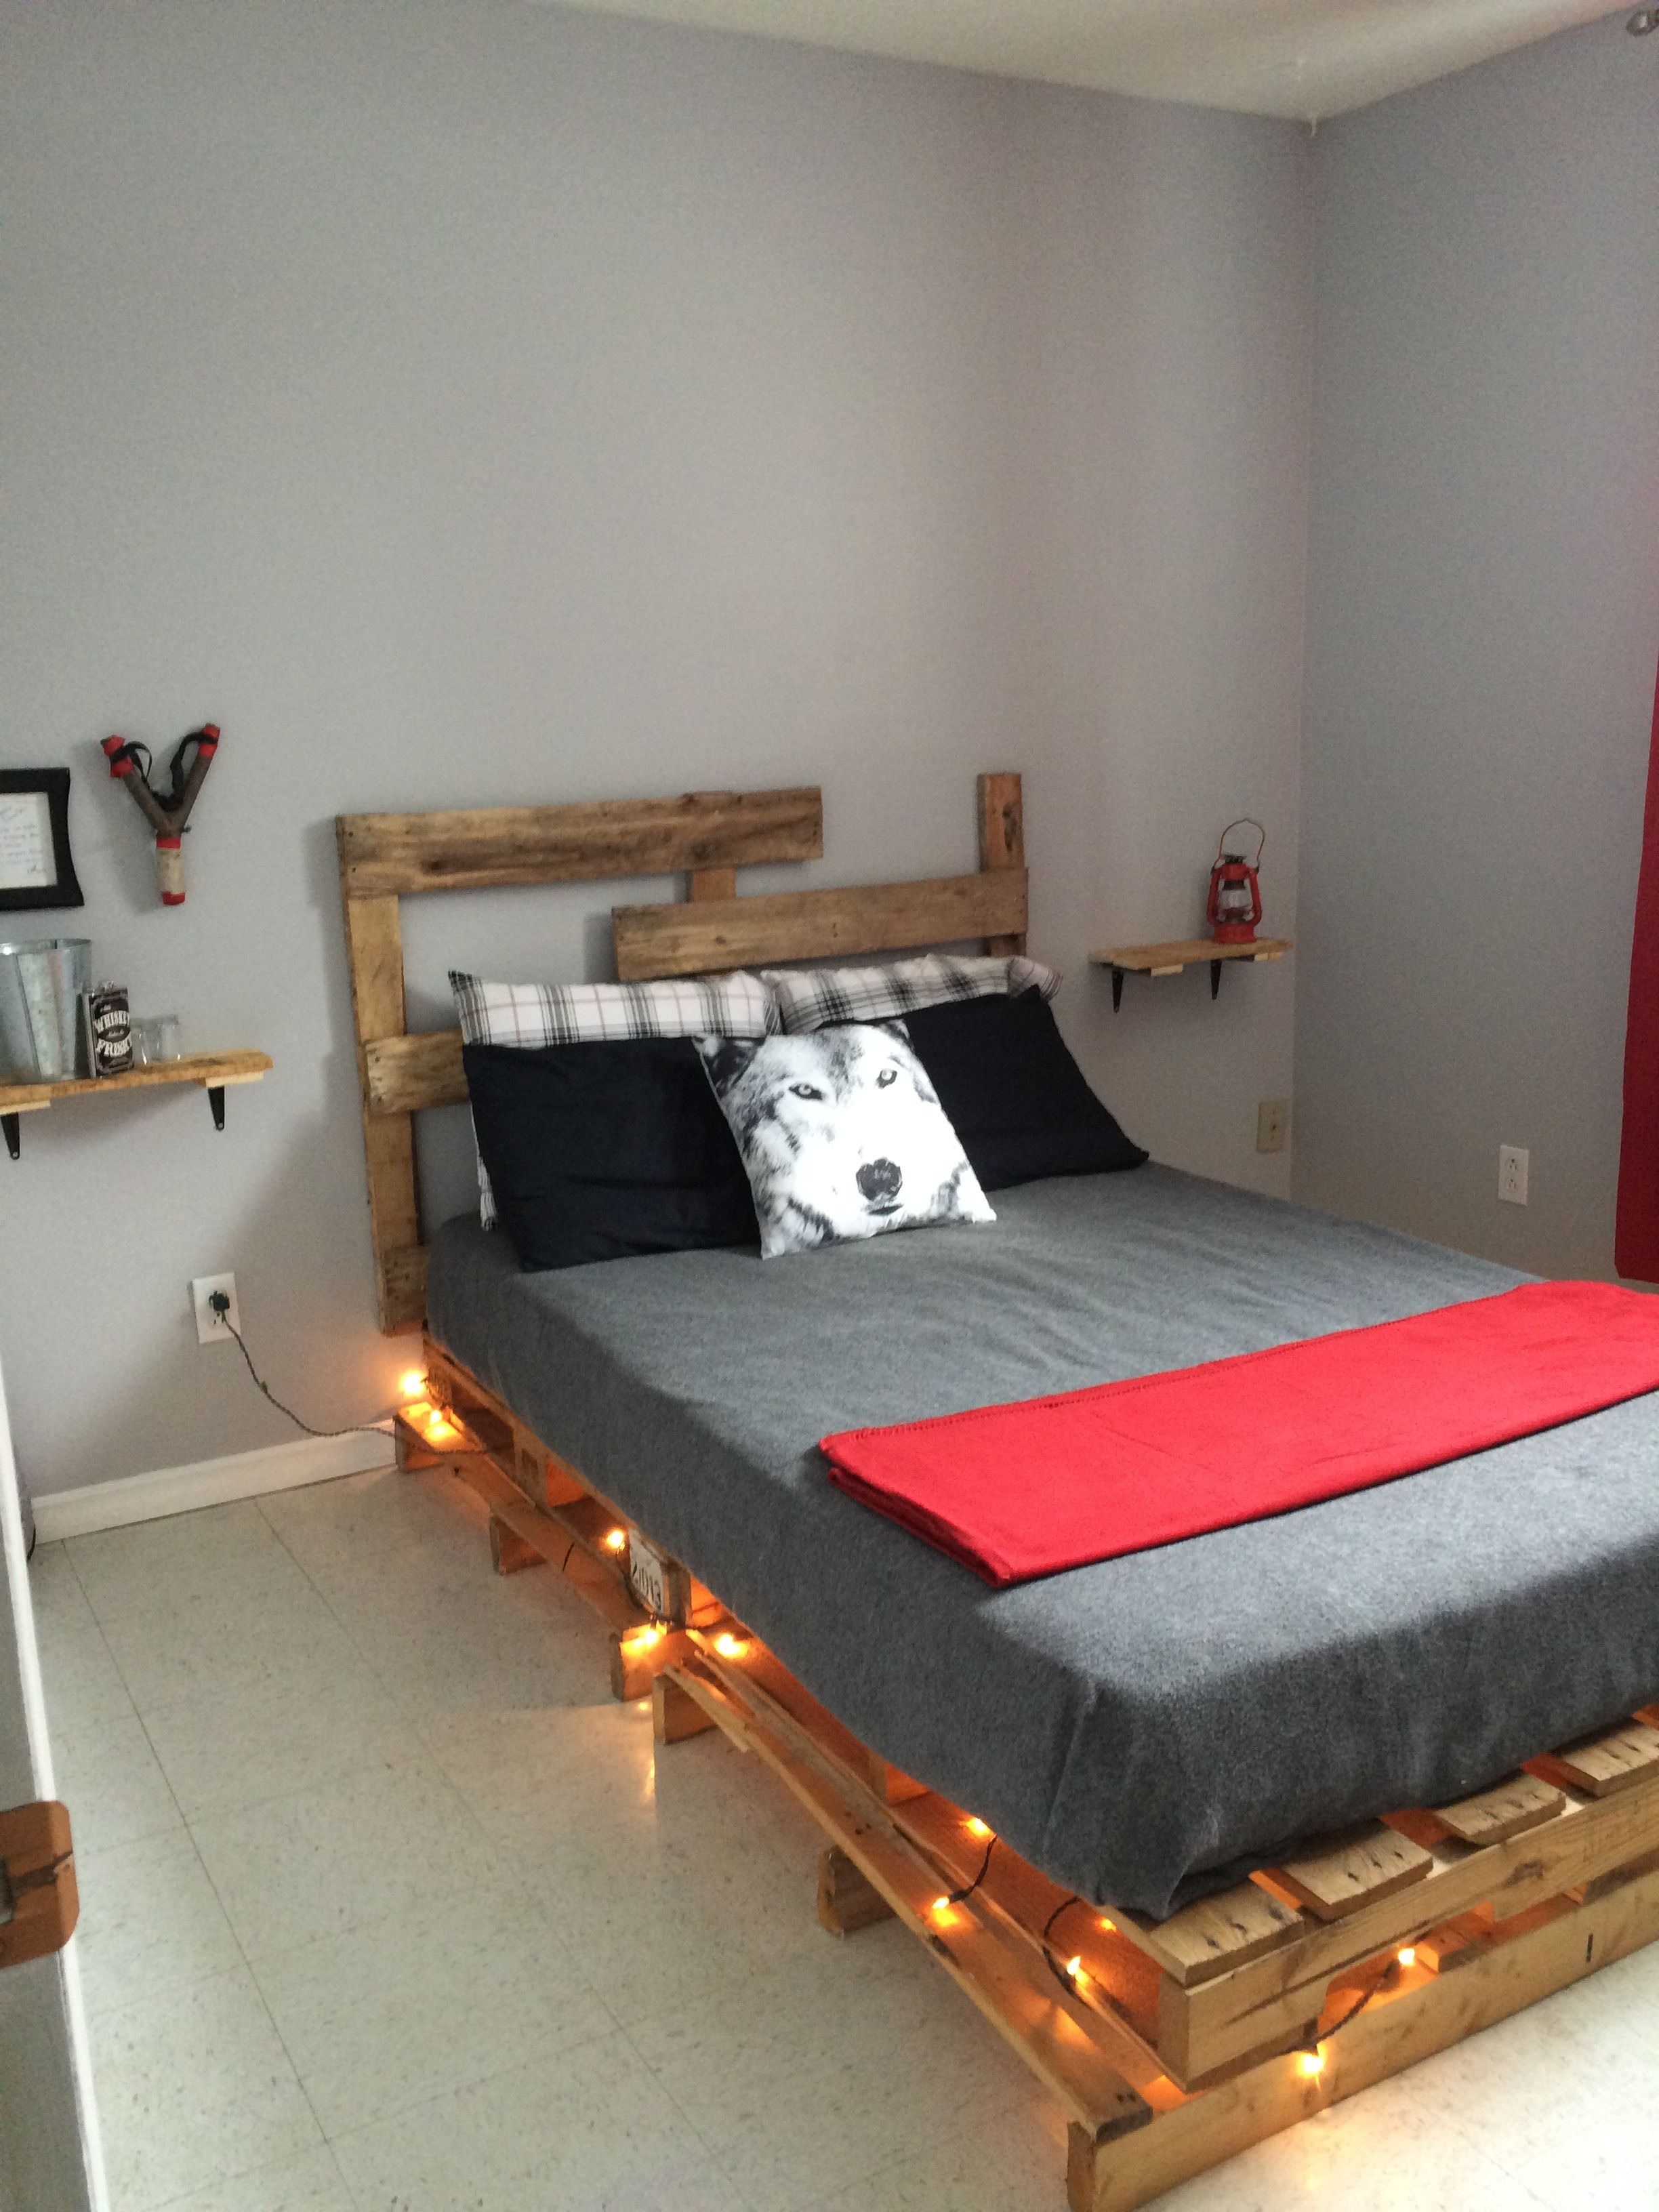 welcome to my room in canada headbord bed base and decor in palet